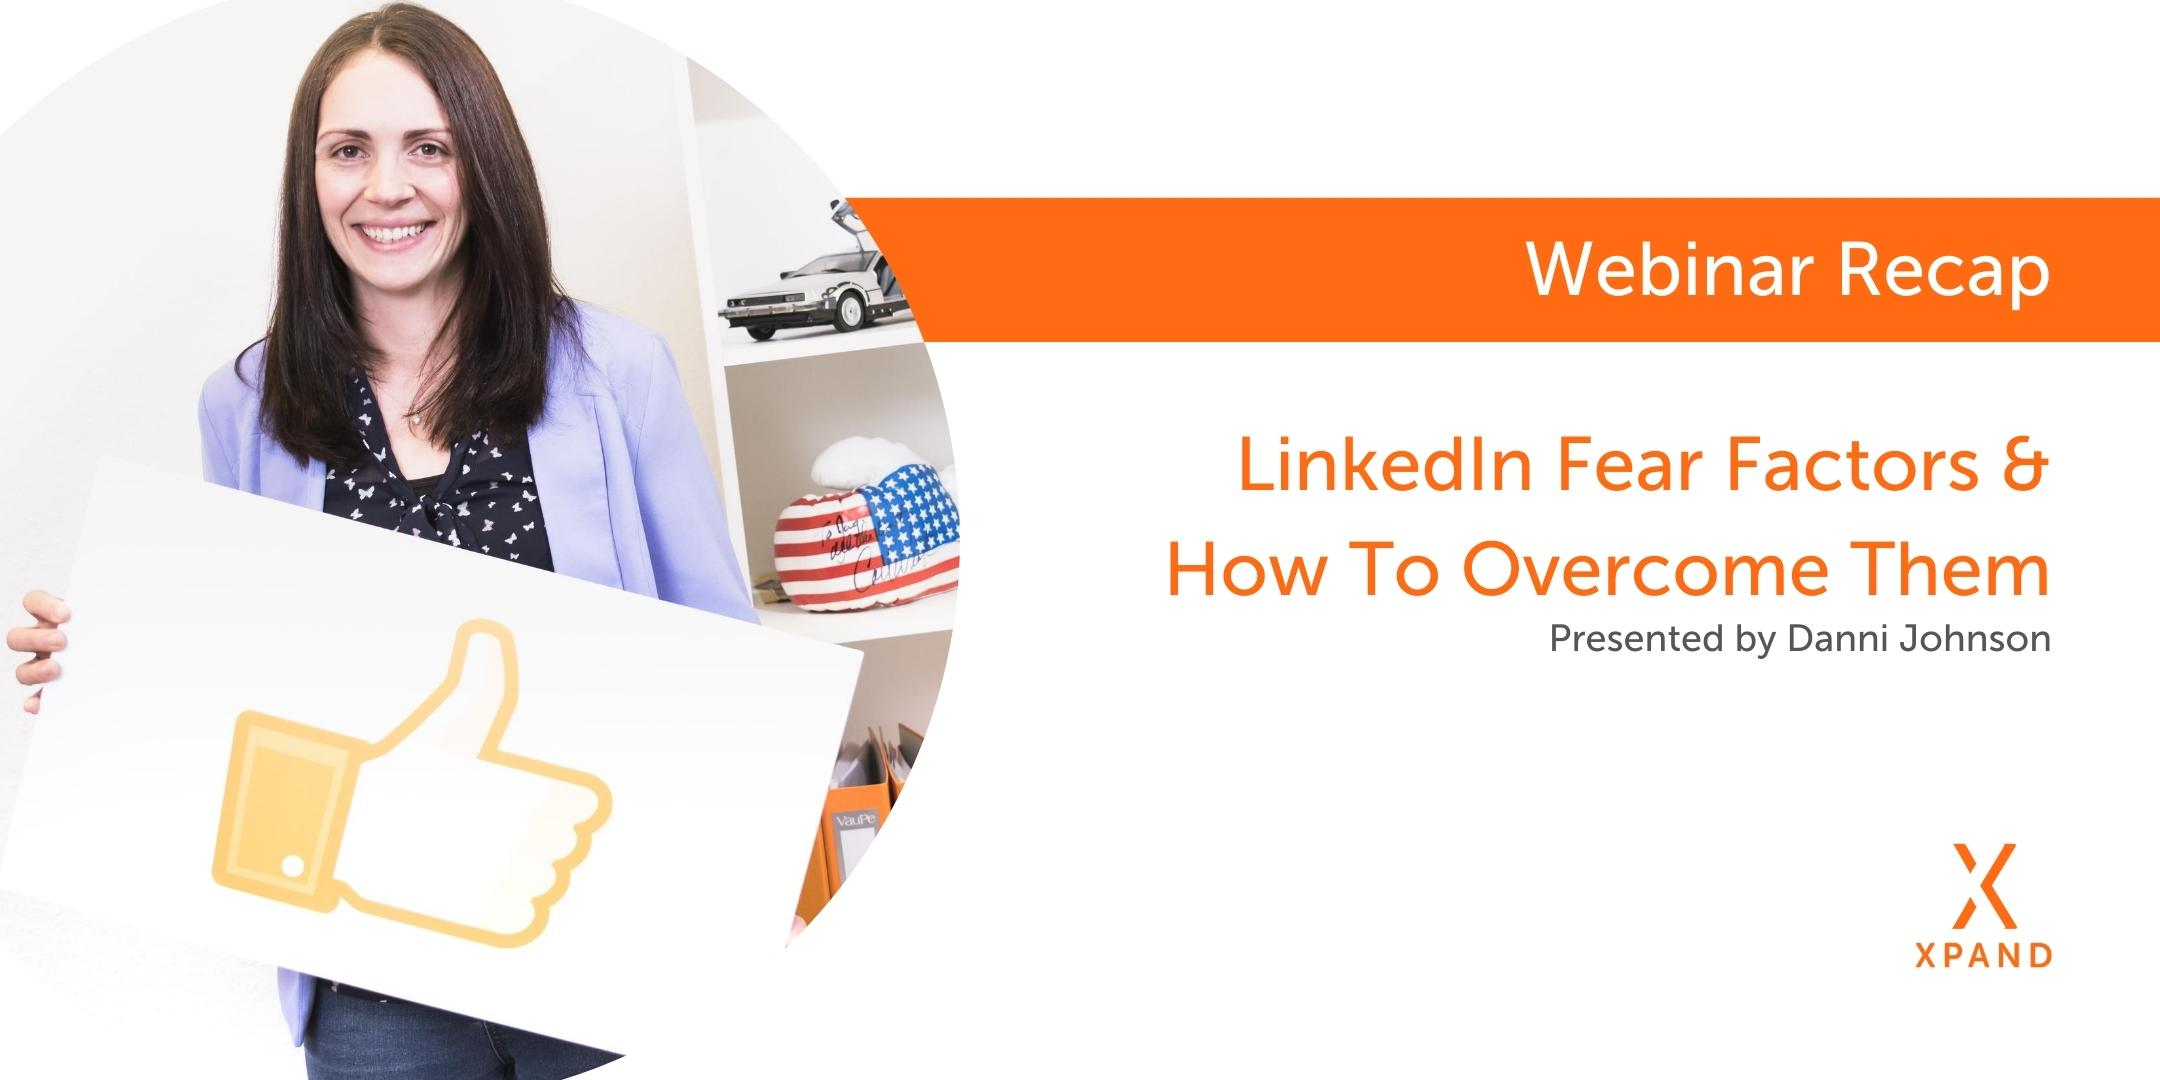 Linkedin Fear Factors & How To Overcome Them